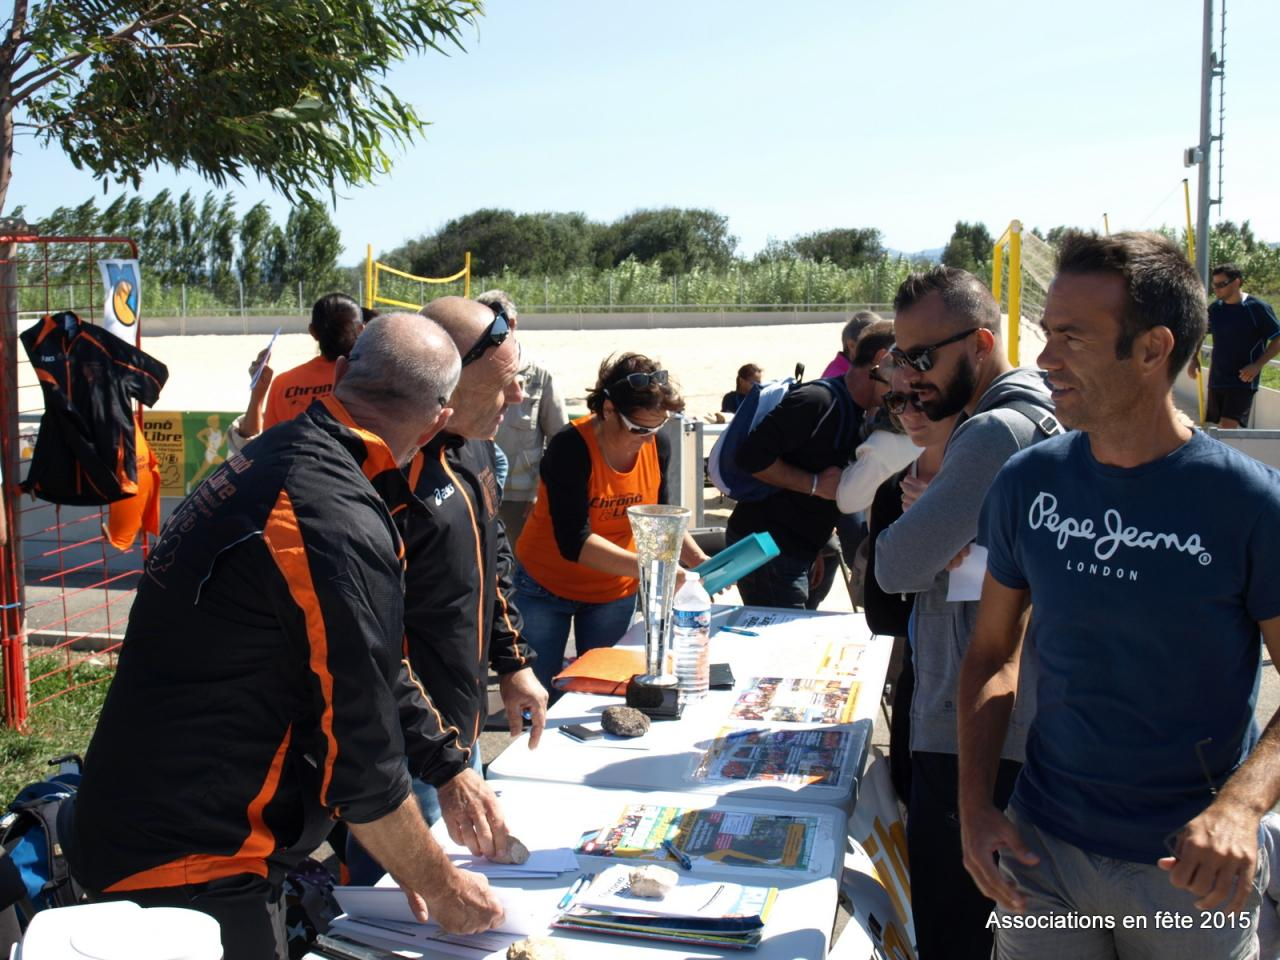 05092015 associations en fete chateauneuf CL (13)